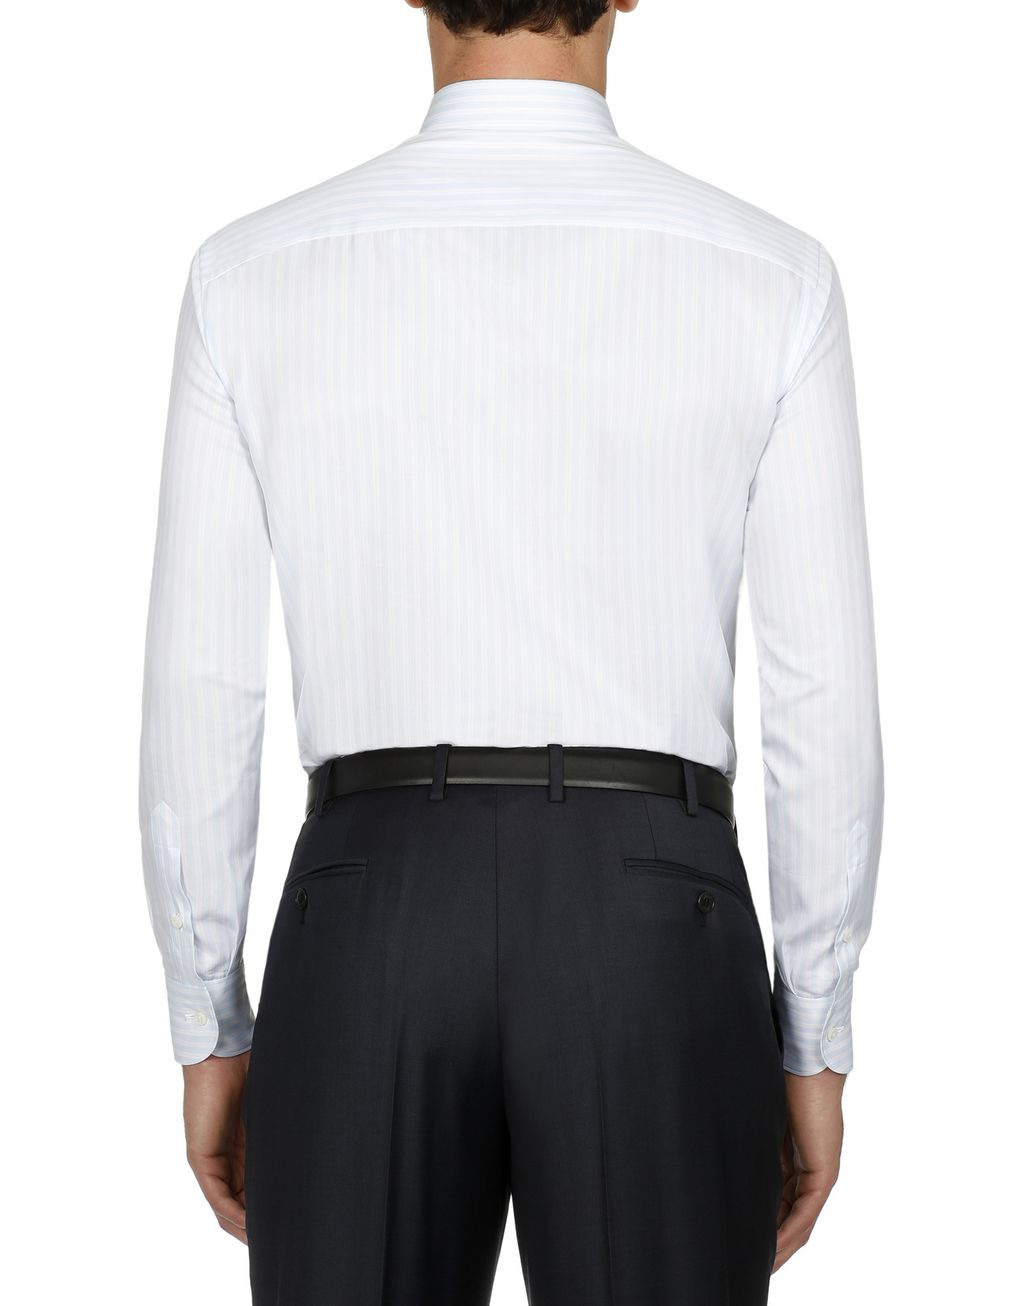 BRIONI Lead and White Striped Shirt Elegantes Hemd Herren d